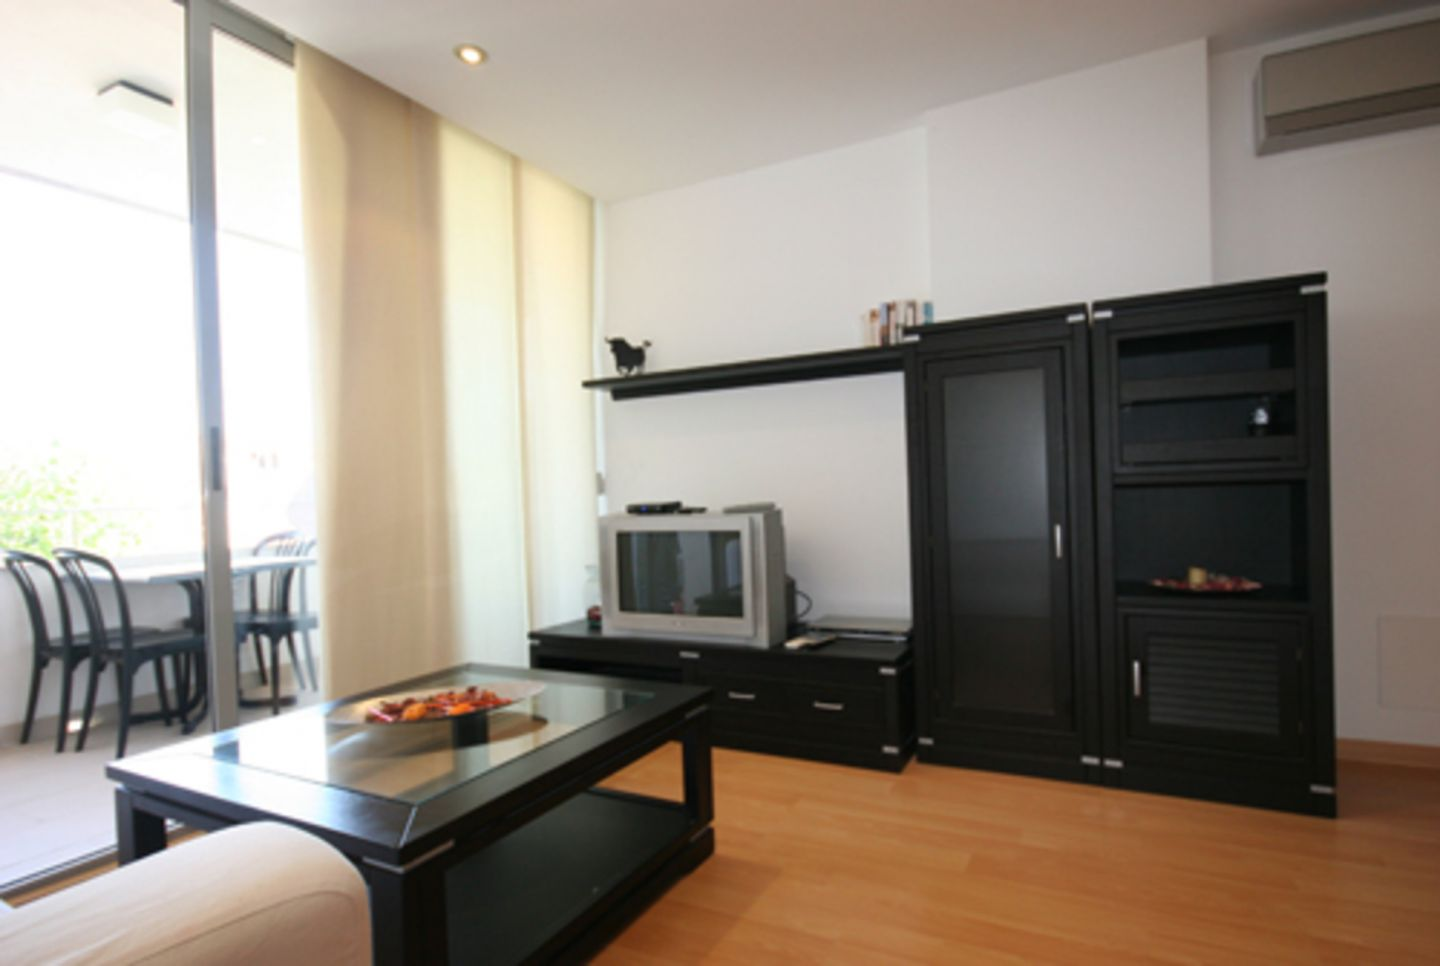 2 Bed Apartment for sale in PUERTO POLLENSA 2